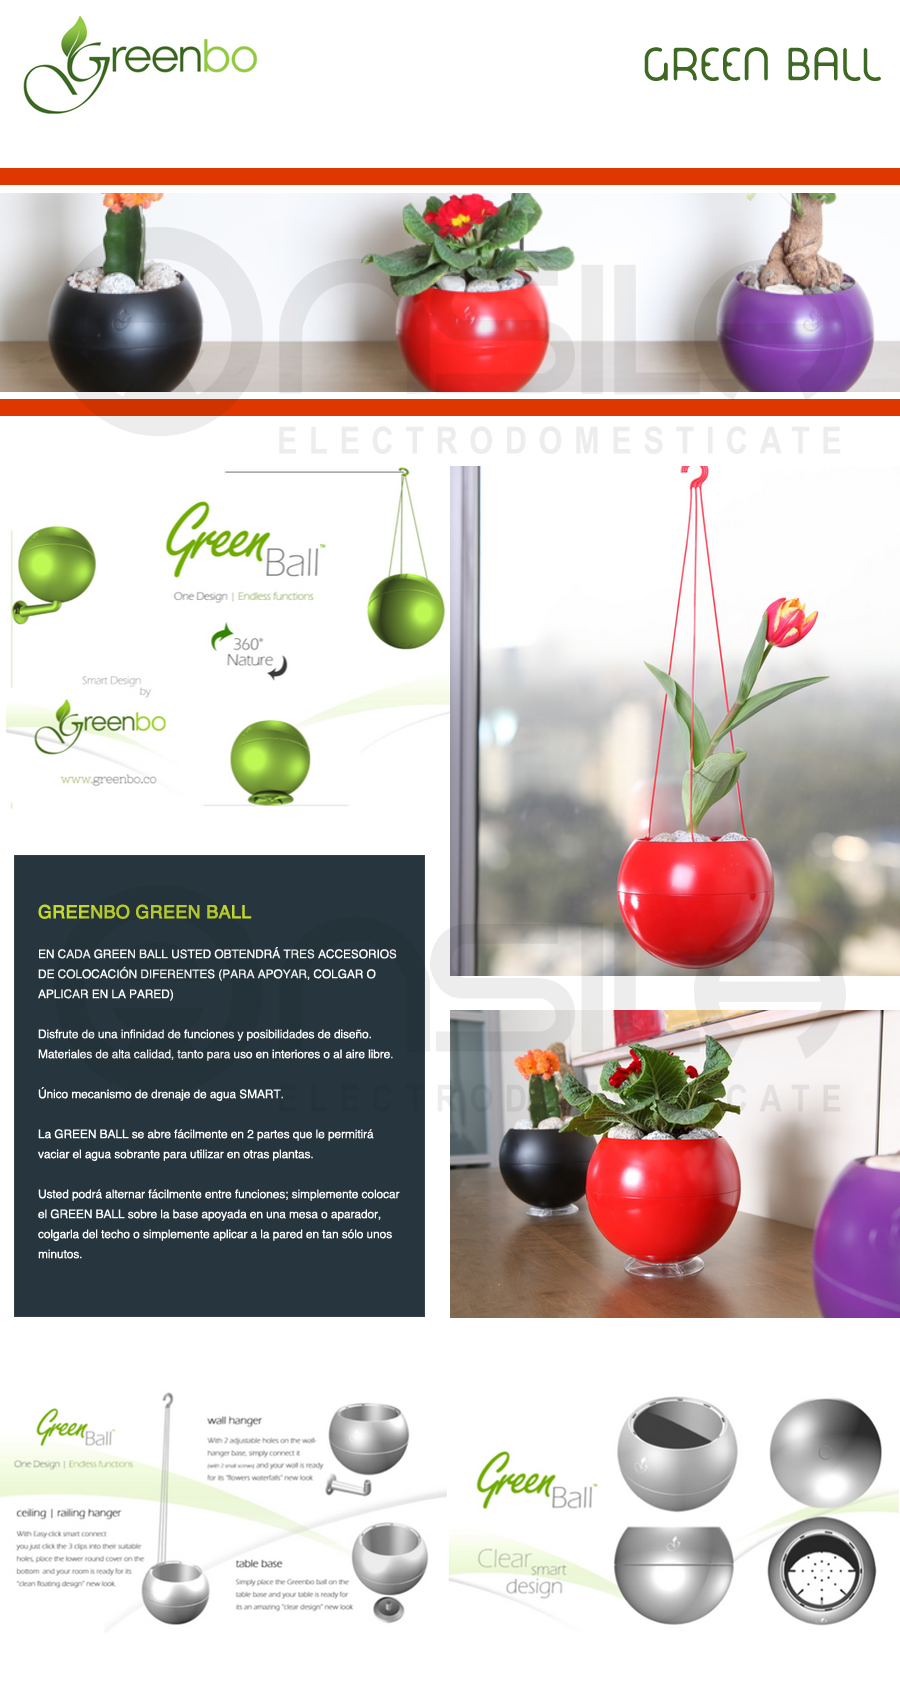 Greenbo greenball